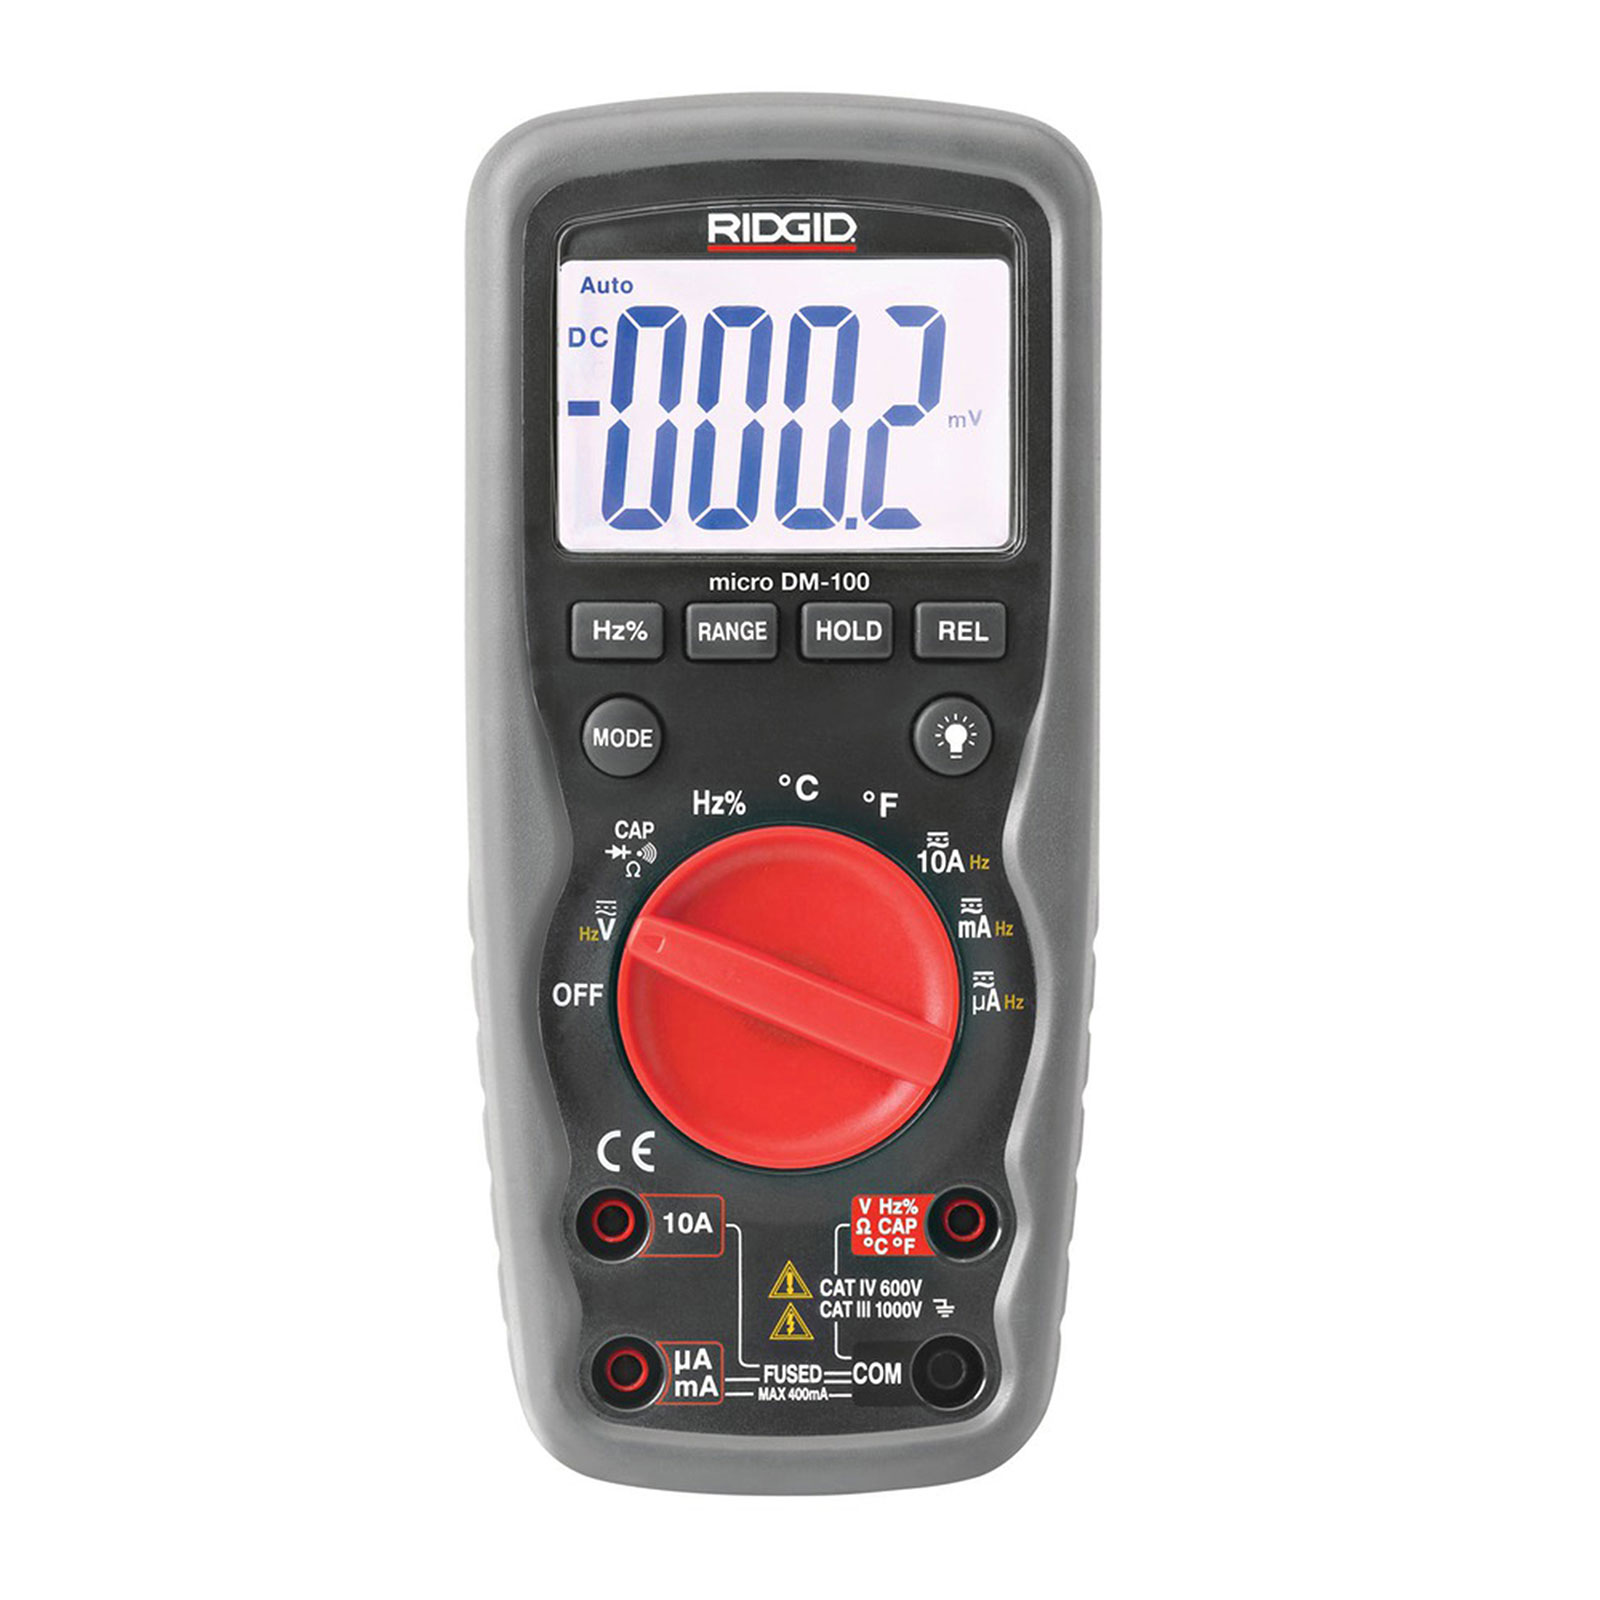 DM-100 Digitale multimeter